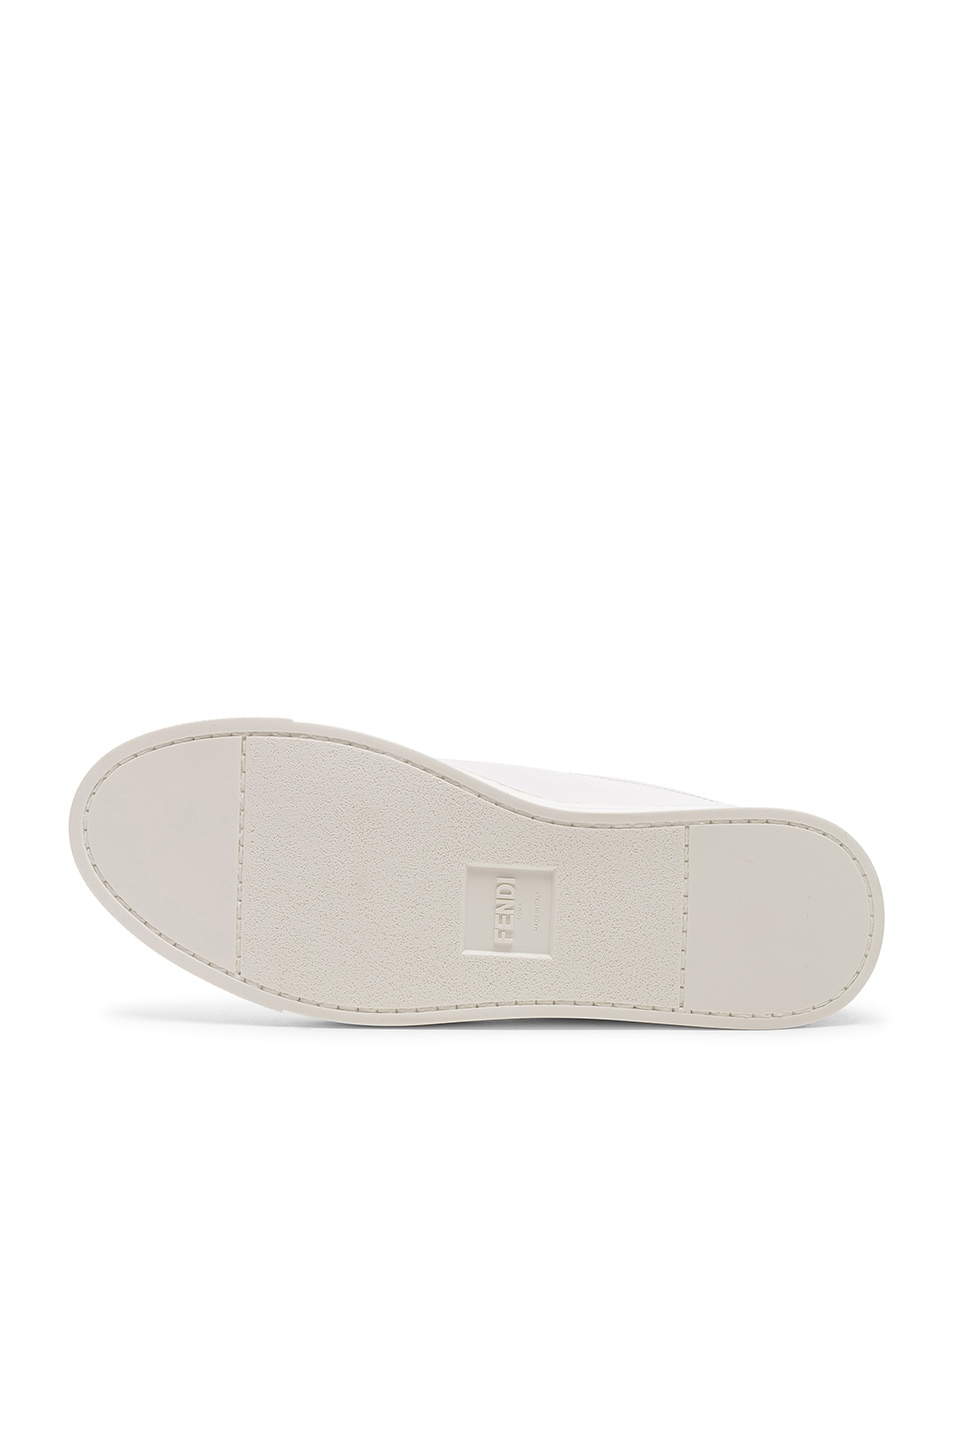 Image 6 of Fendi Rockoclick Sneakers in White